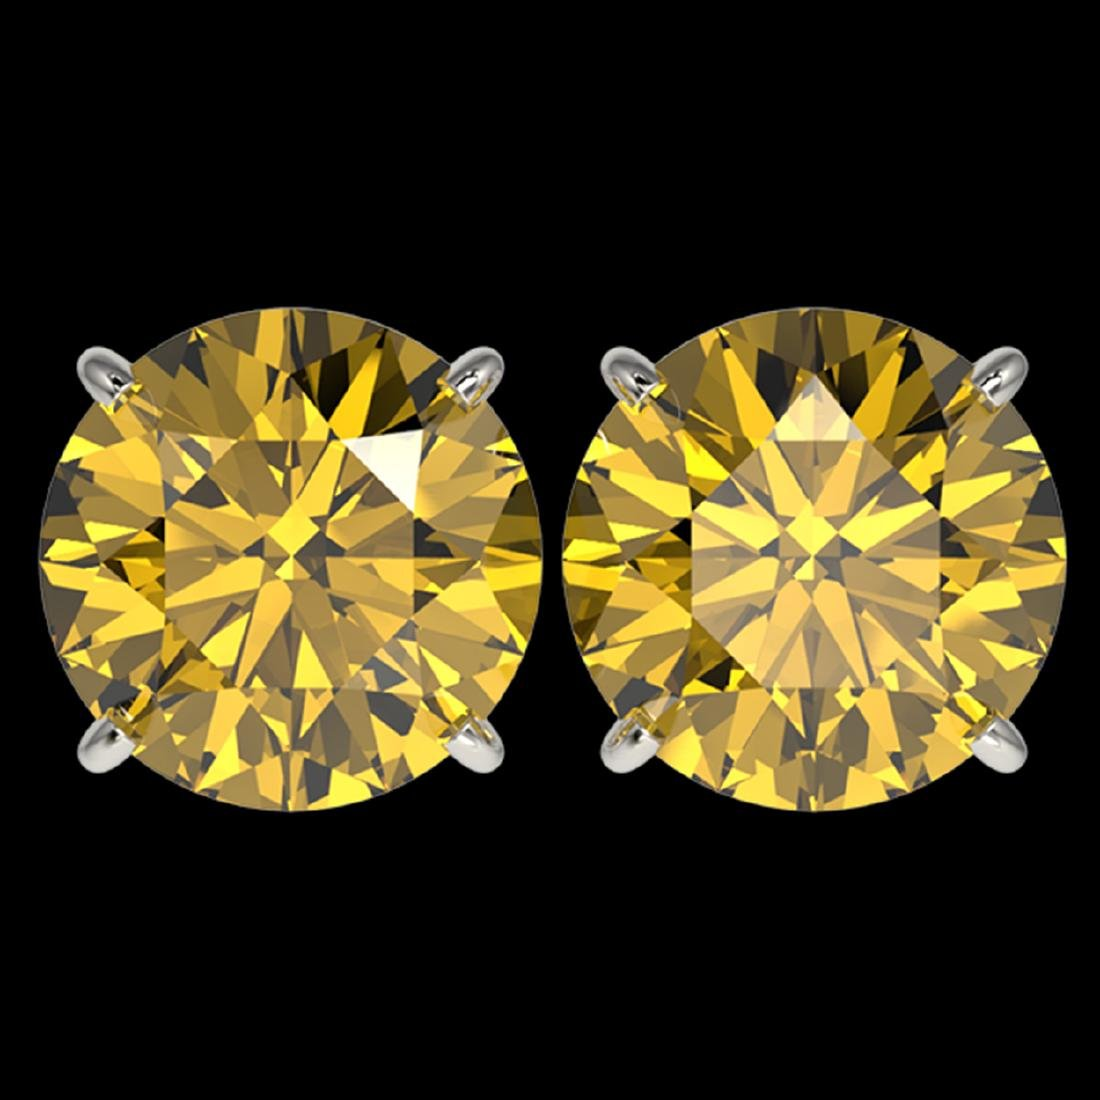 5 ctw Intense Yellow Diamond Stud Earrings 10K White